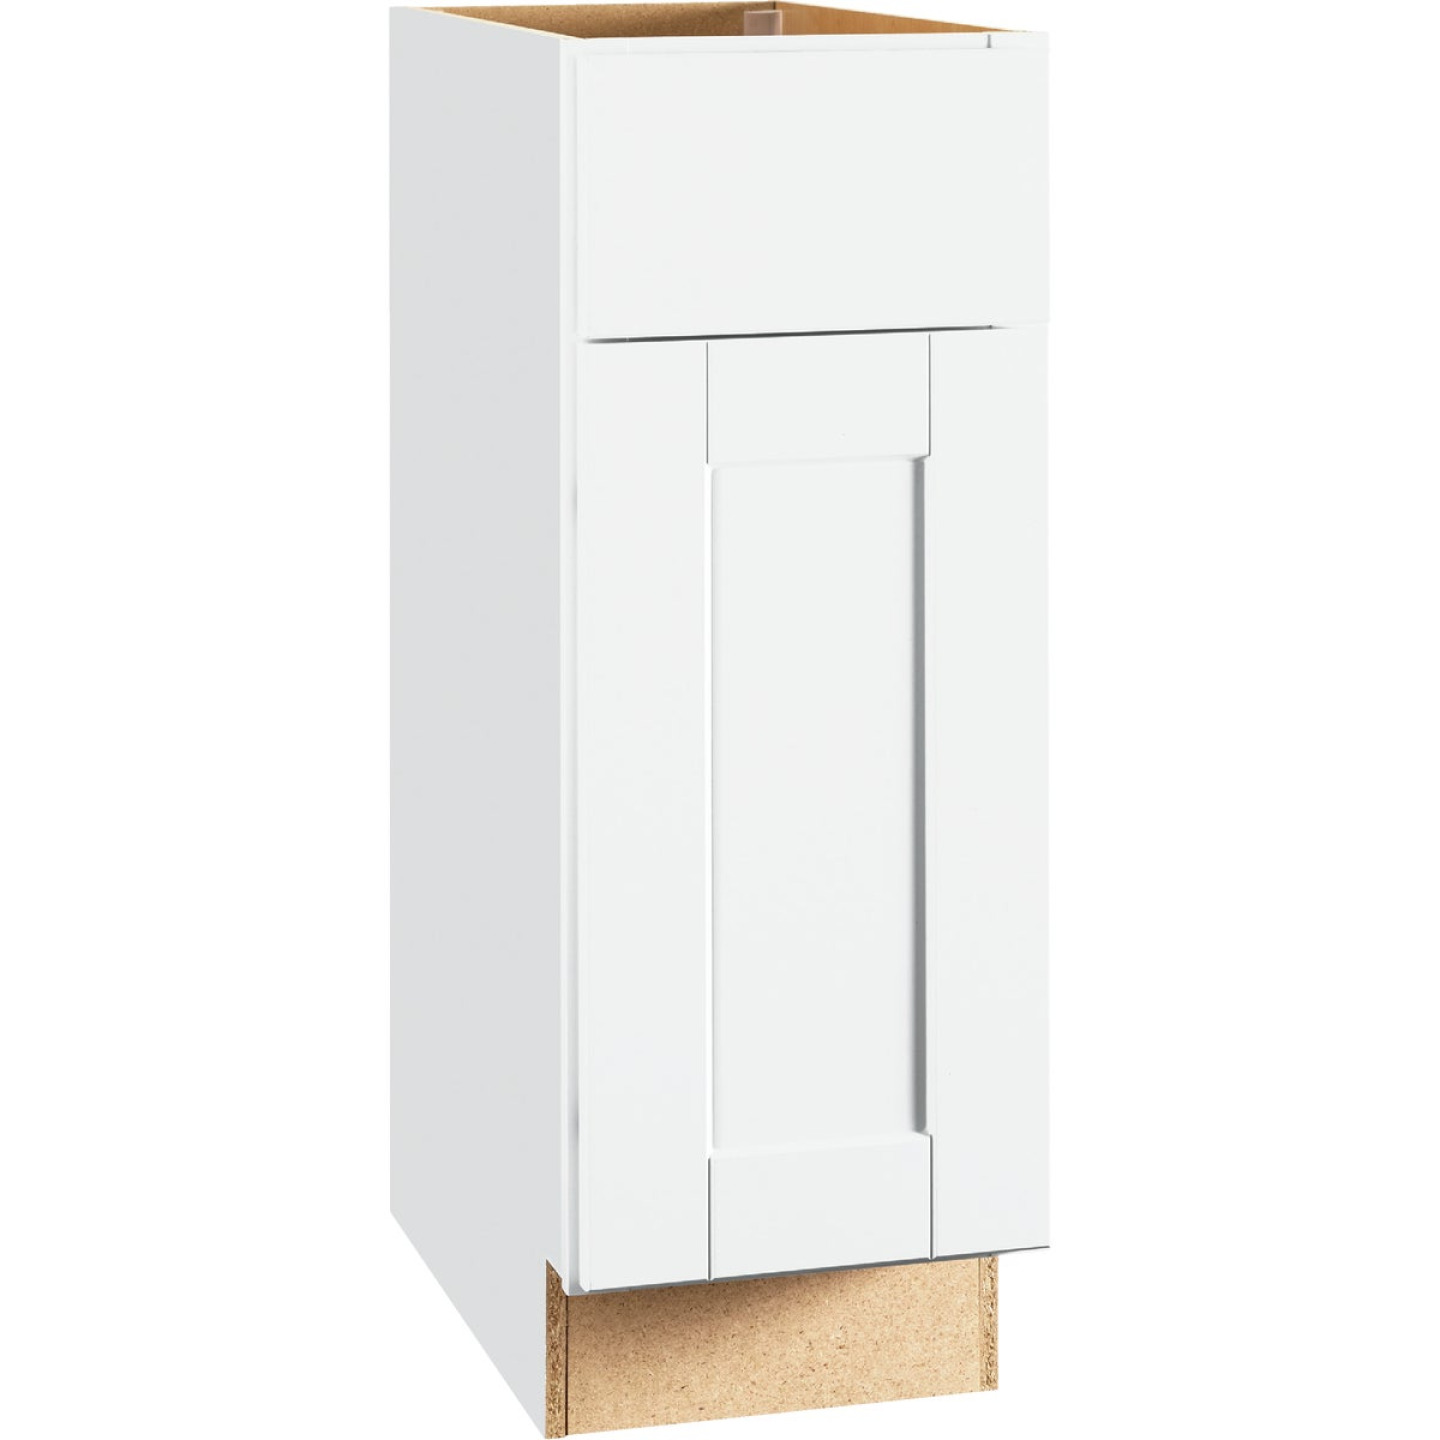 Continental Cabinets Andover Shaker 12 In. W x 34 In. H x 24 In. D White Thermofoil Base Kitchen Cabinet Image 1